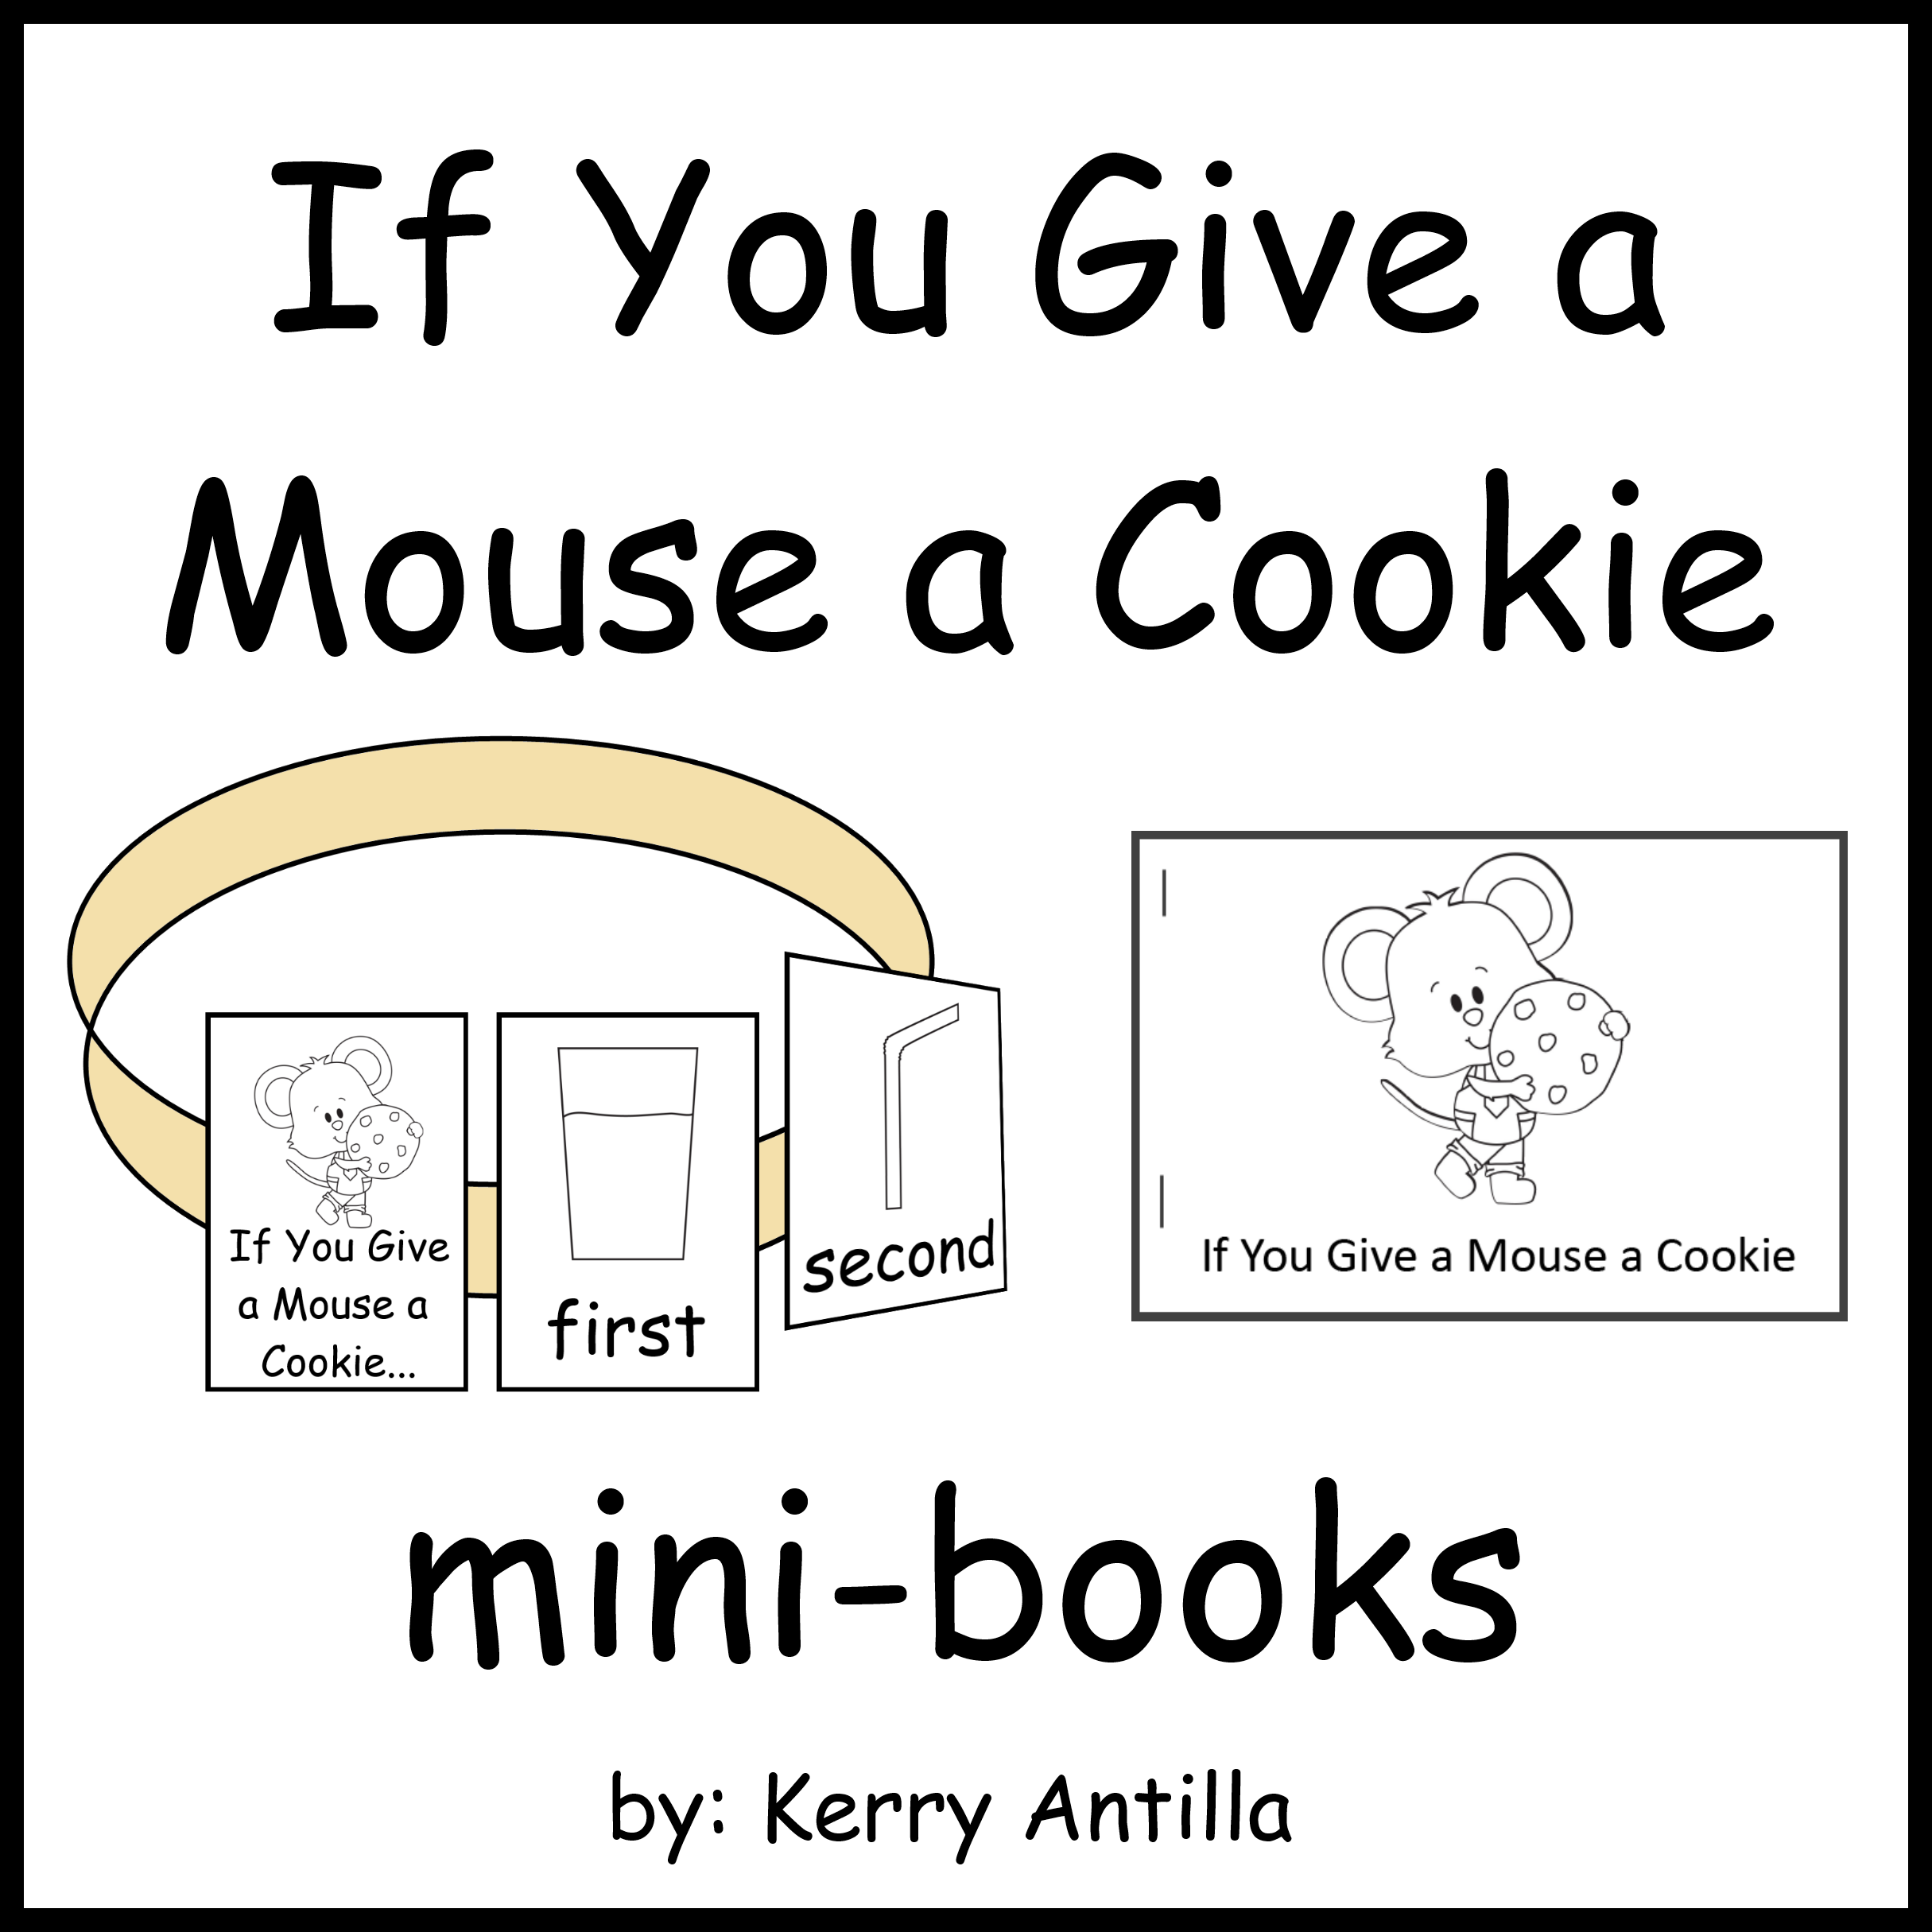 worksheet If You Give A Mouse A Cookie Worksheets if you give a mouse cookie mini books ordinal numbers mice and books